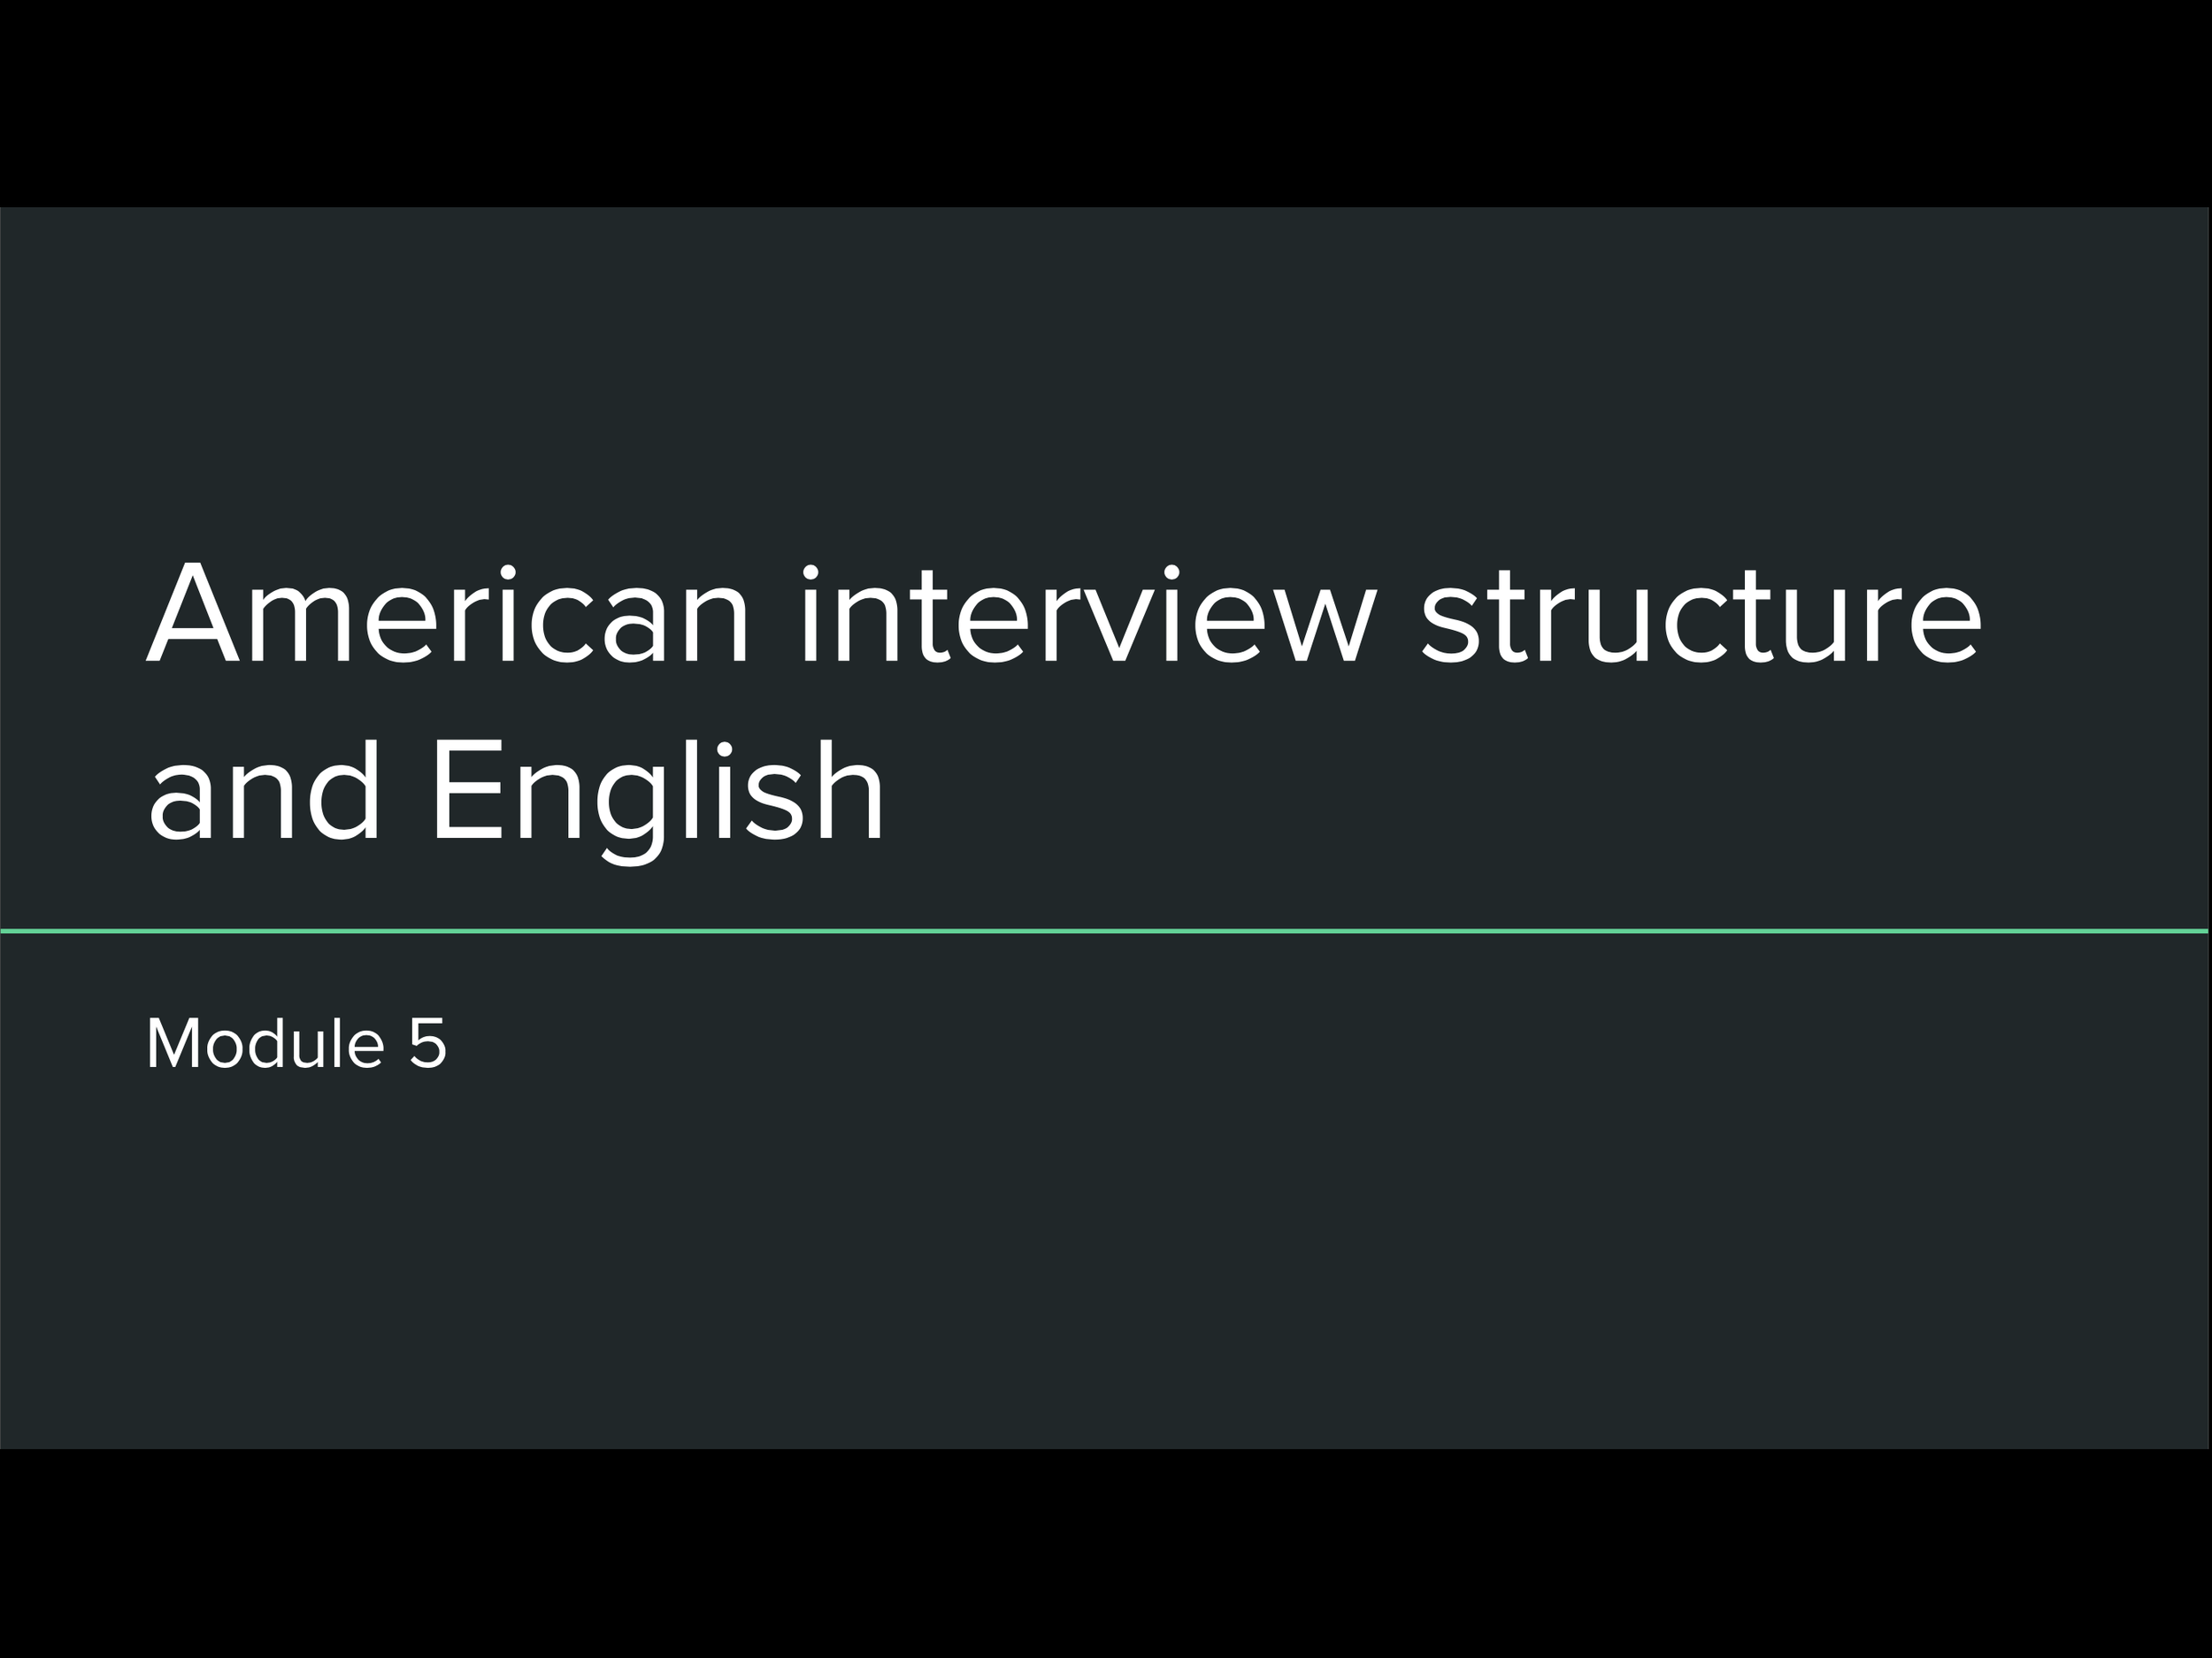 Module 5: American interview structure and English